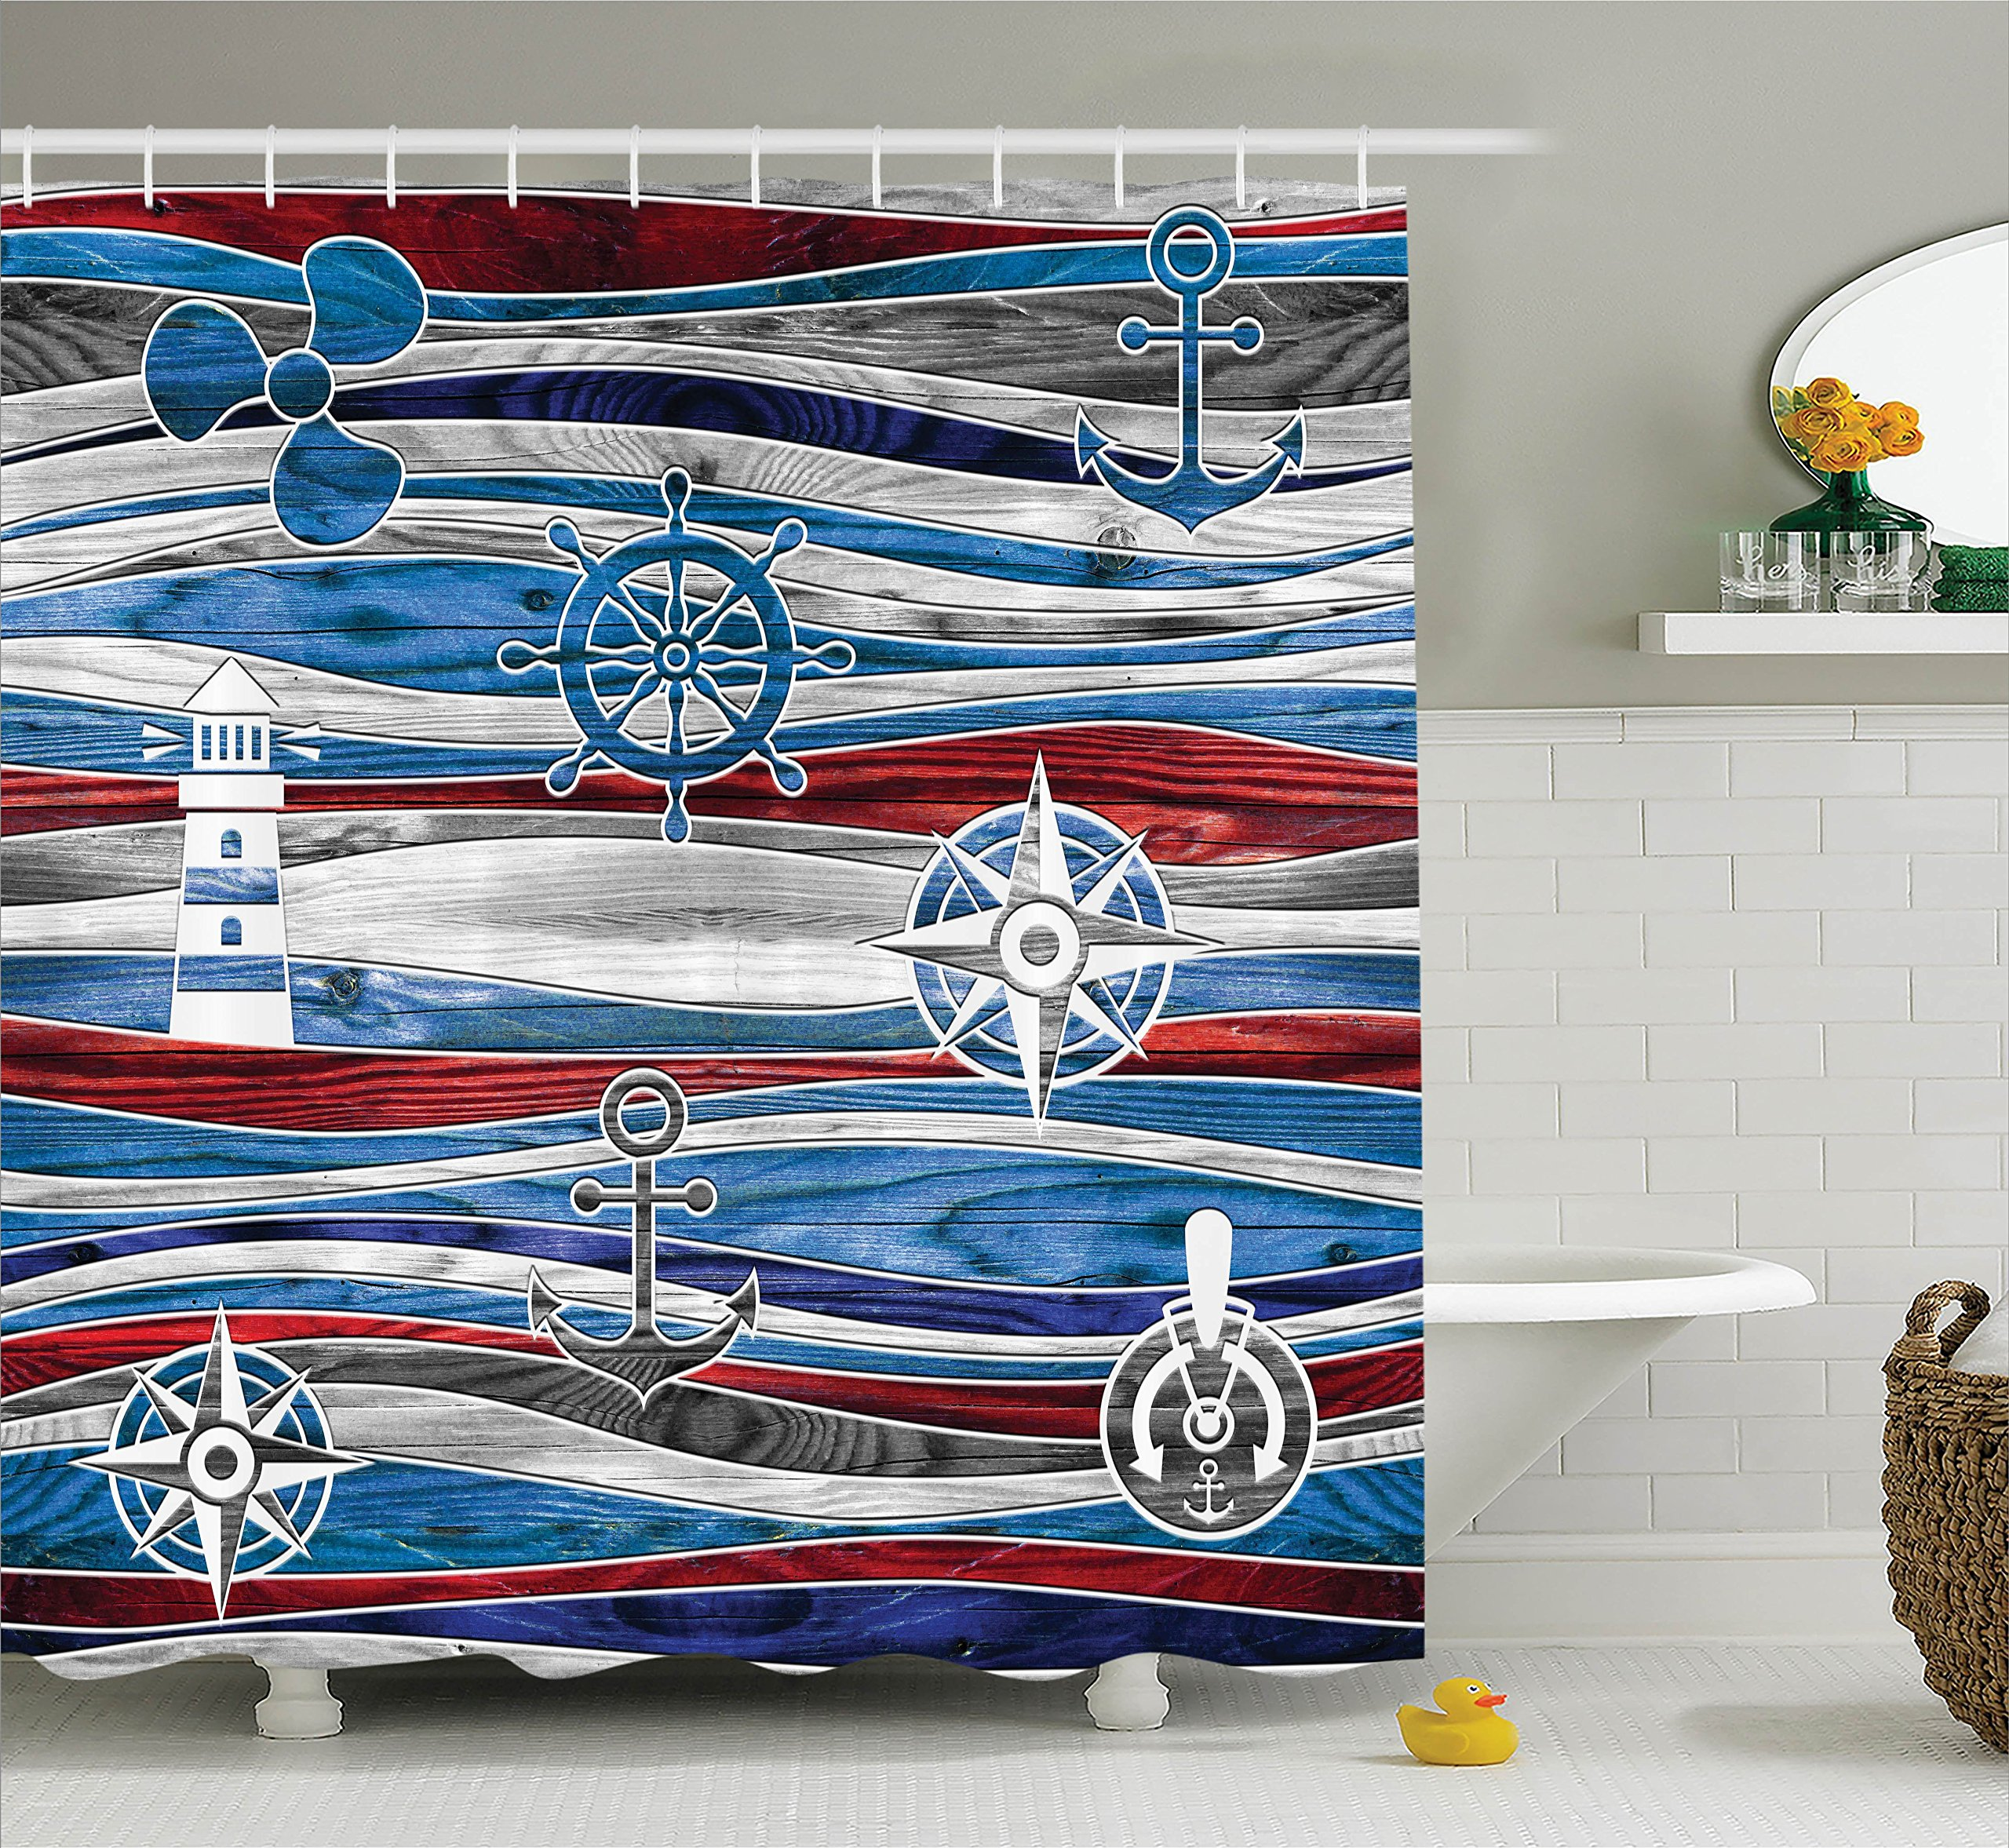 Ambesonne Anchor Decor Collection, Shipping Boat Anchor Lighthouse Steering Wheel Compass Waves Background Image, Polyester Fabric Bathroom Shower Curtain Set with Hooks, Red Navy Blue Grey